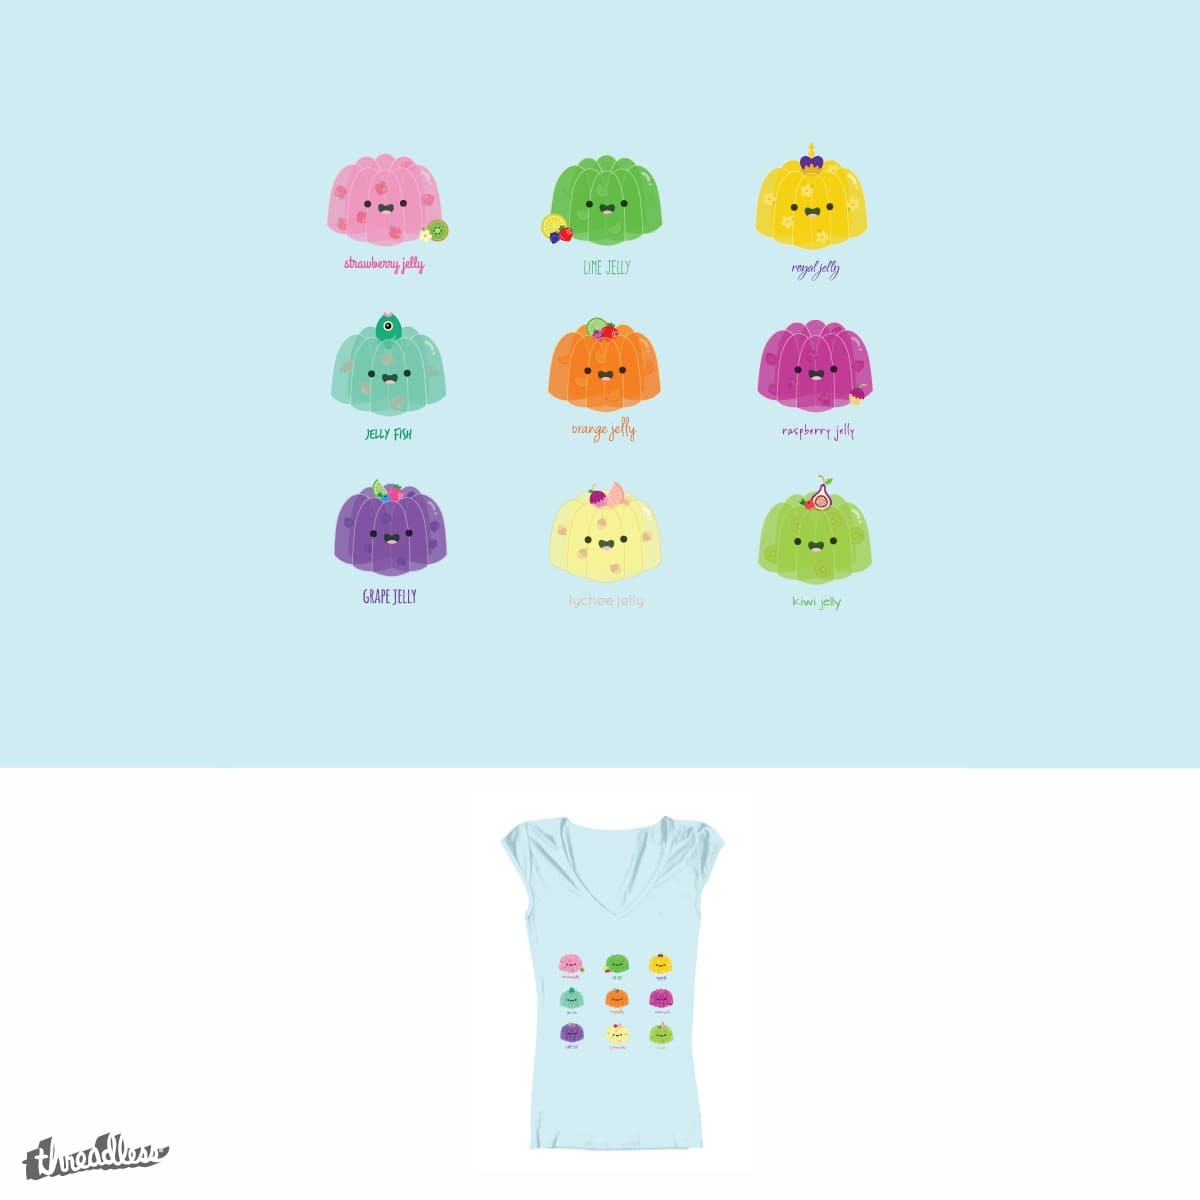 I Don't Think You're Ready for this Jelly by tootoo on Threadless